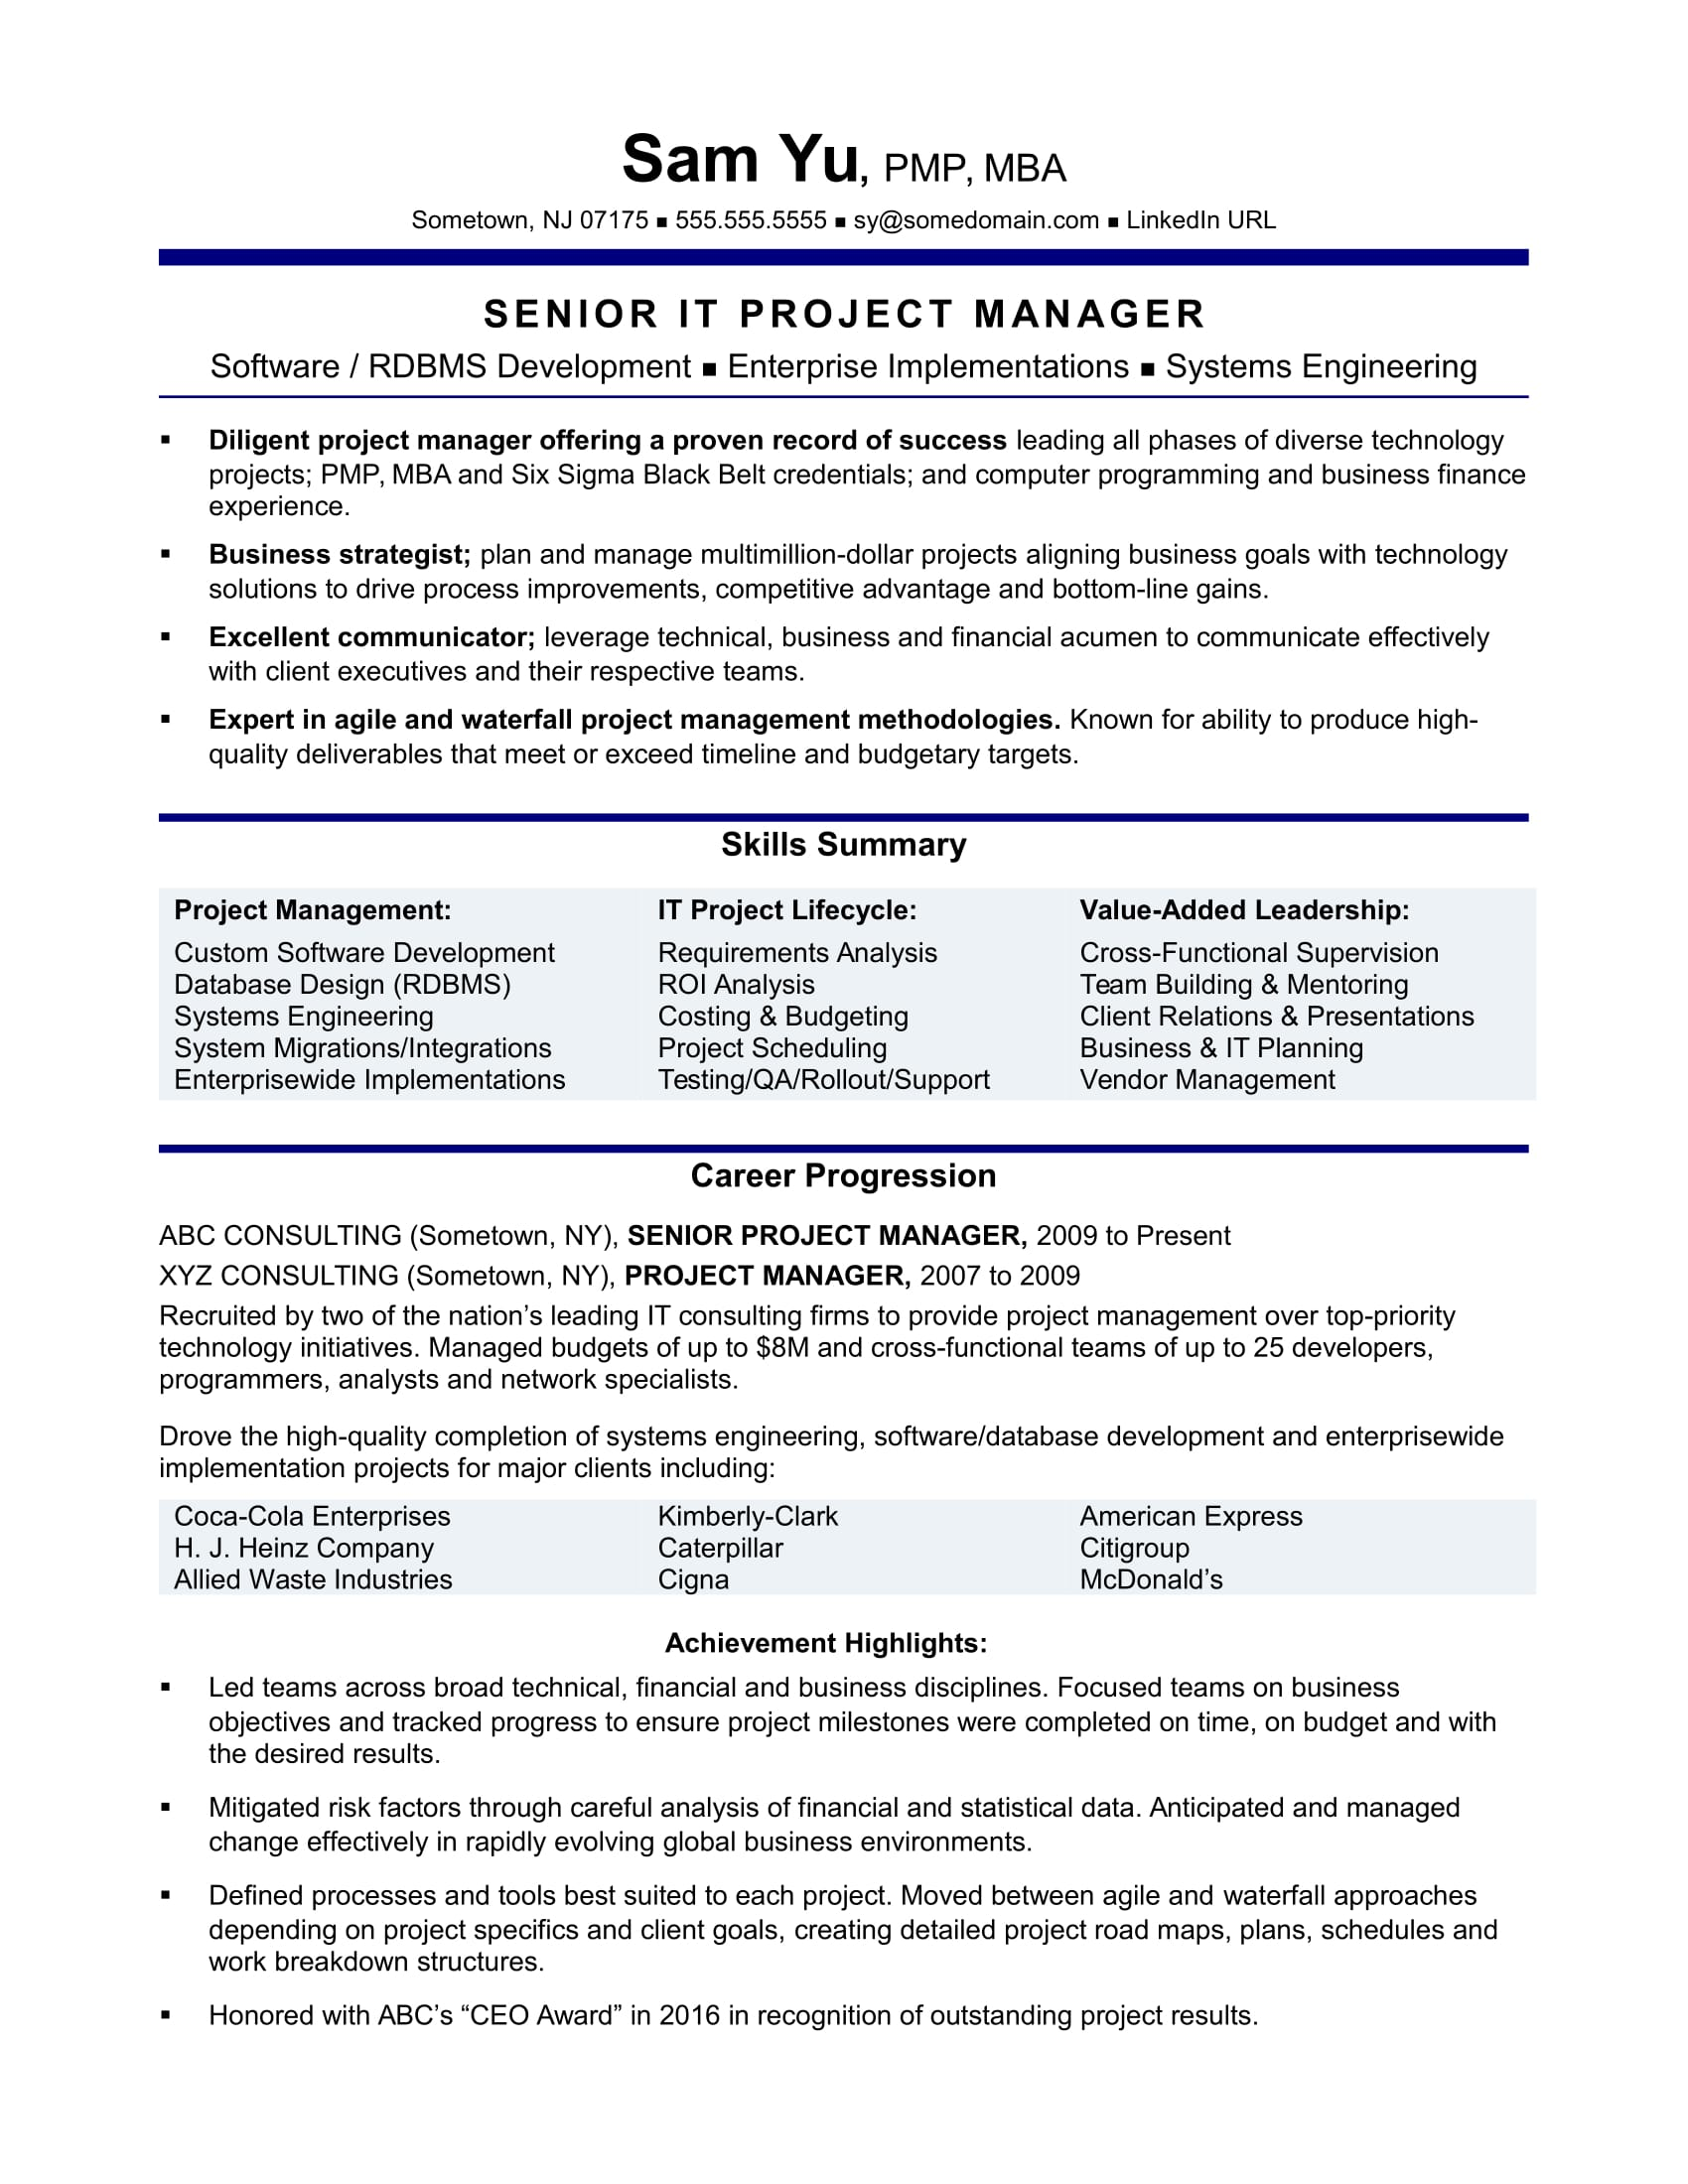 Genial Experienced IT Project Manager Resume Sample